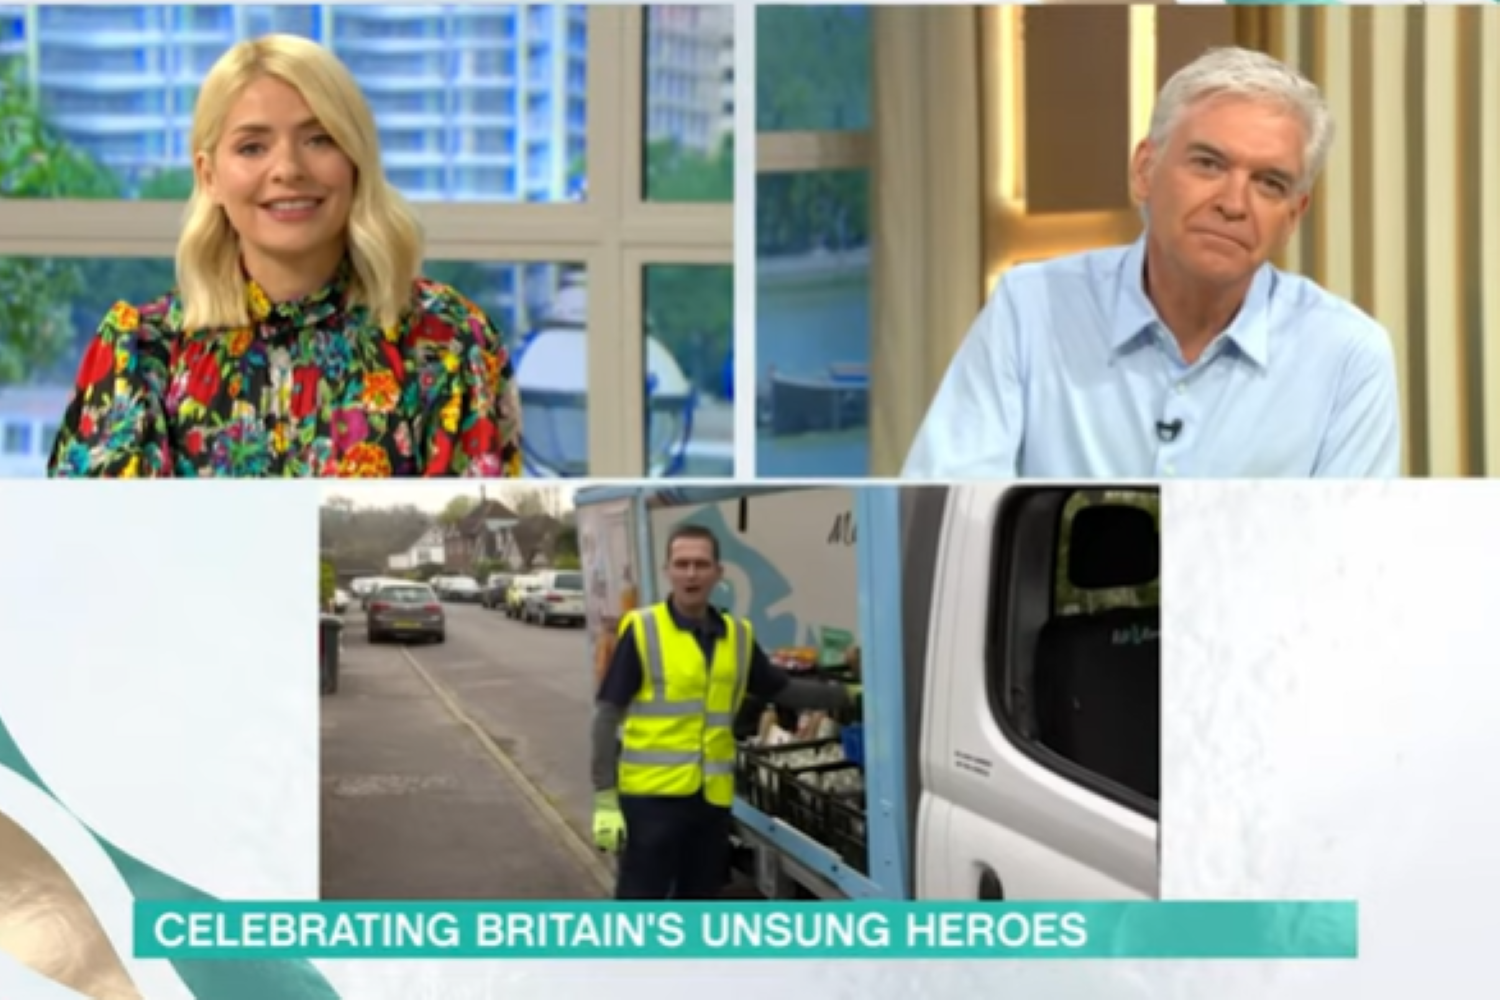 This Morning viewers in hysterics as customer yells at milkman on live TV